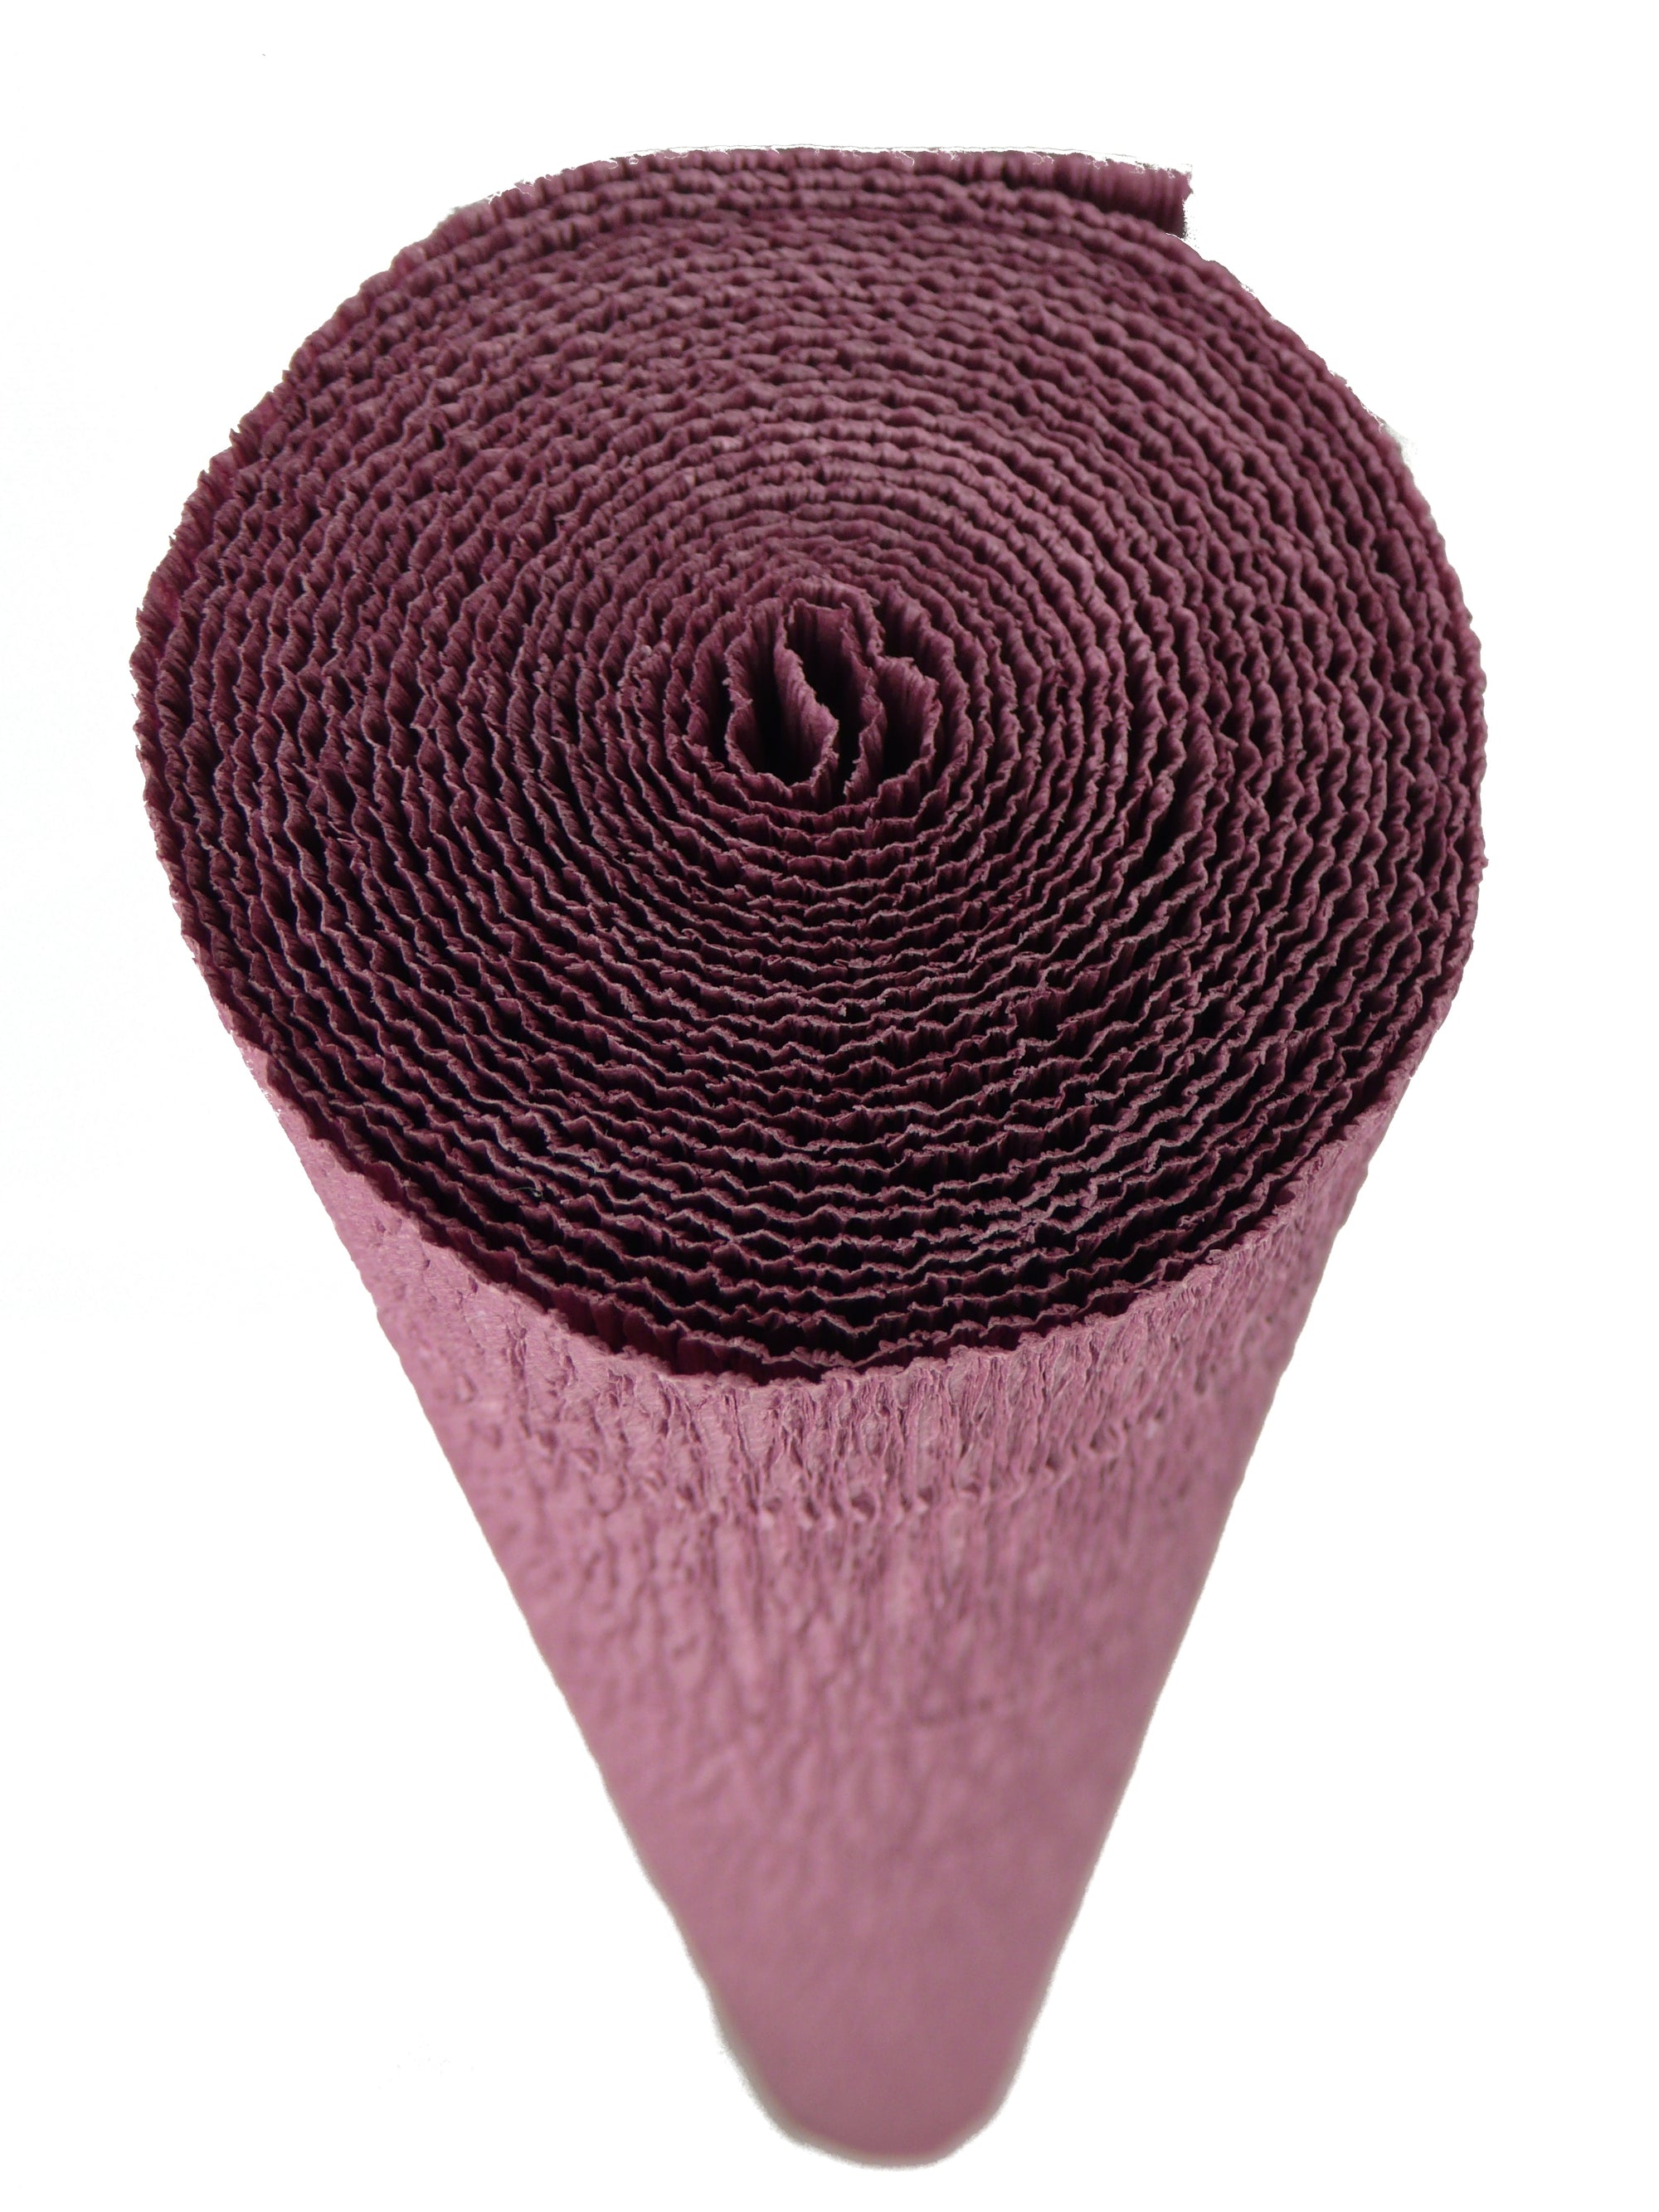 Italian Crepe Paper roll 180 gram - 620 Dusky Plum BY TIFFANIE TURNER